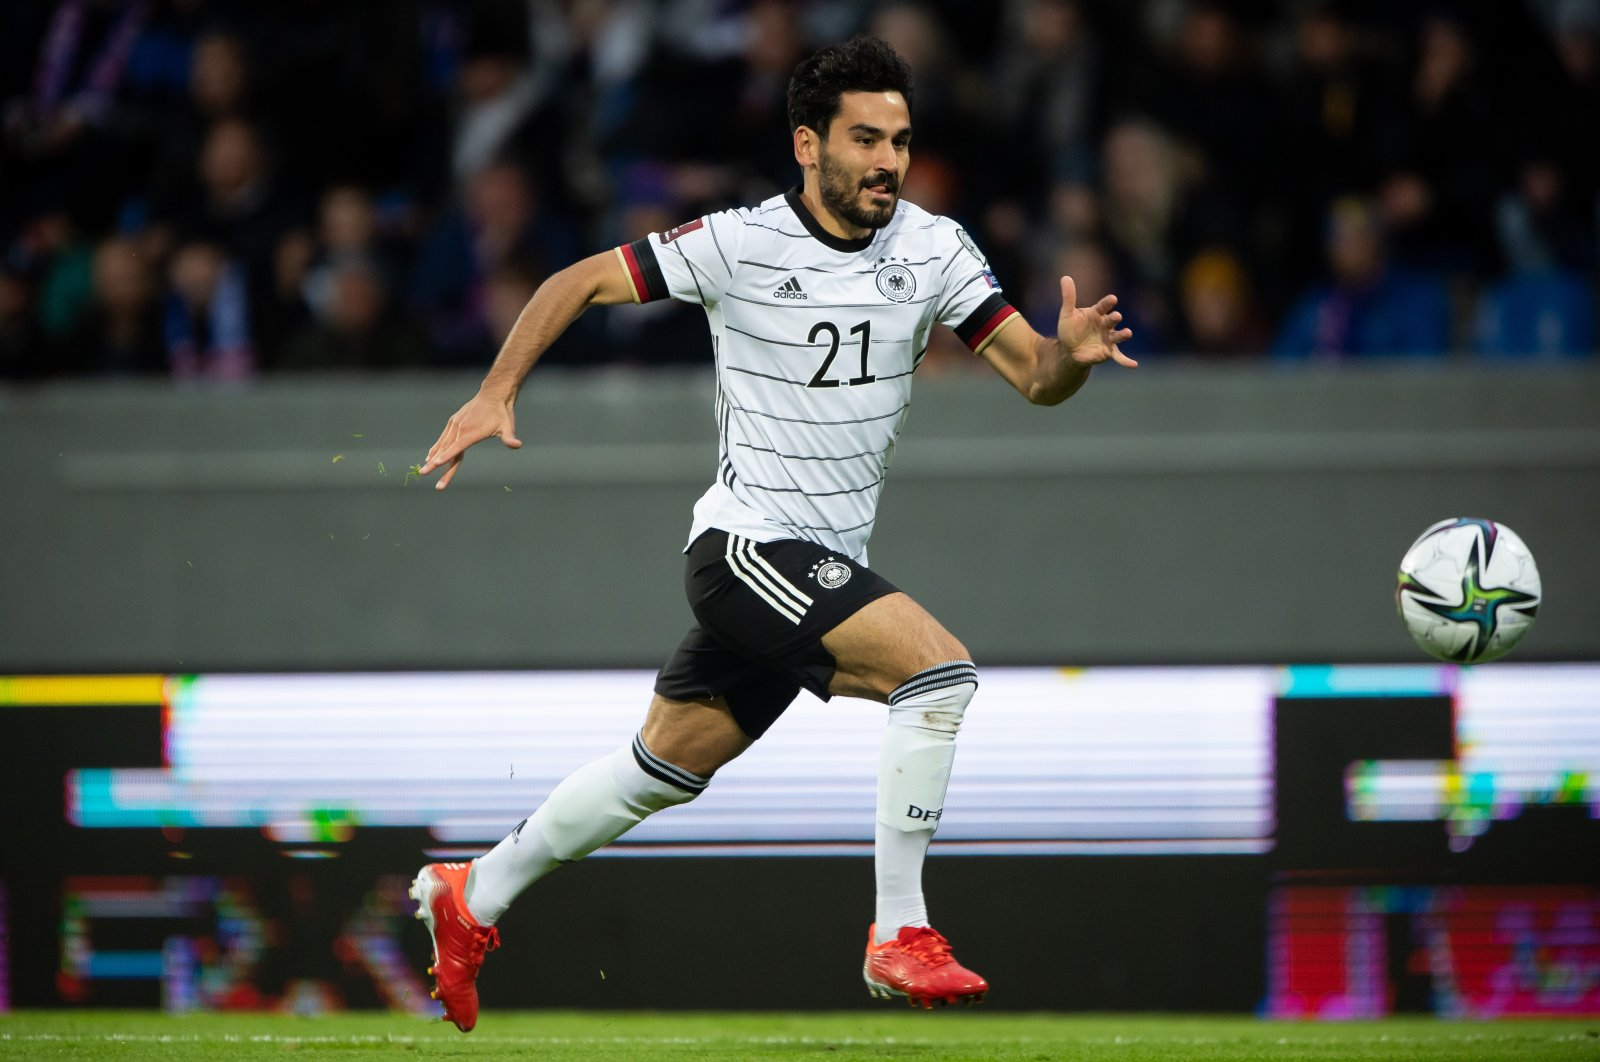 Germany midfielder Ilkay Gündoğan controls the ball during the 2022 FIFA World Cup qualifier football match between Iceland and Germany in Reykjavik, Iceland, Sept. 8, 2021. (Getty Images)